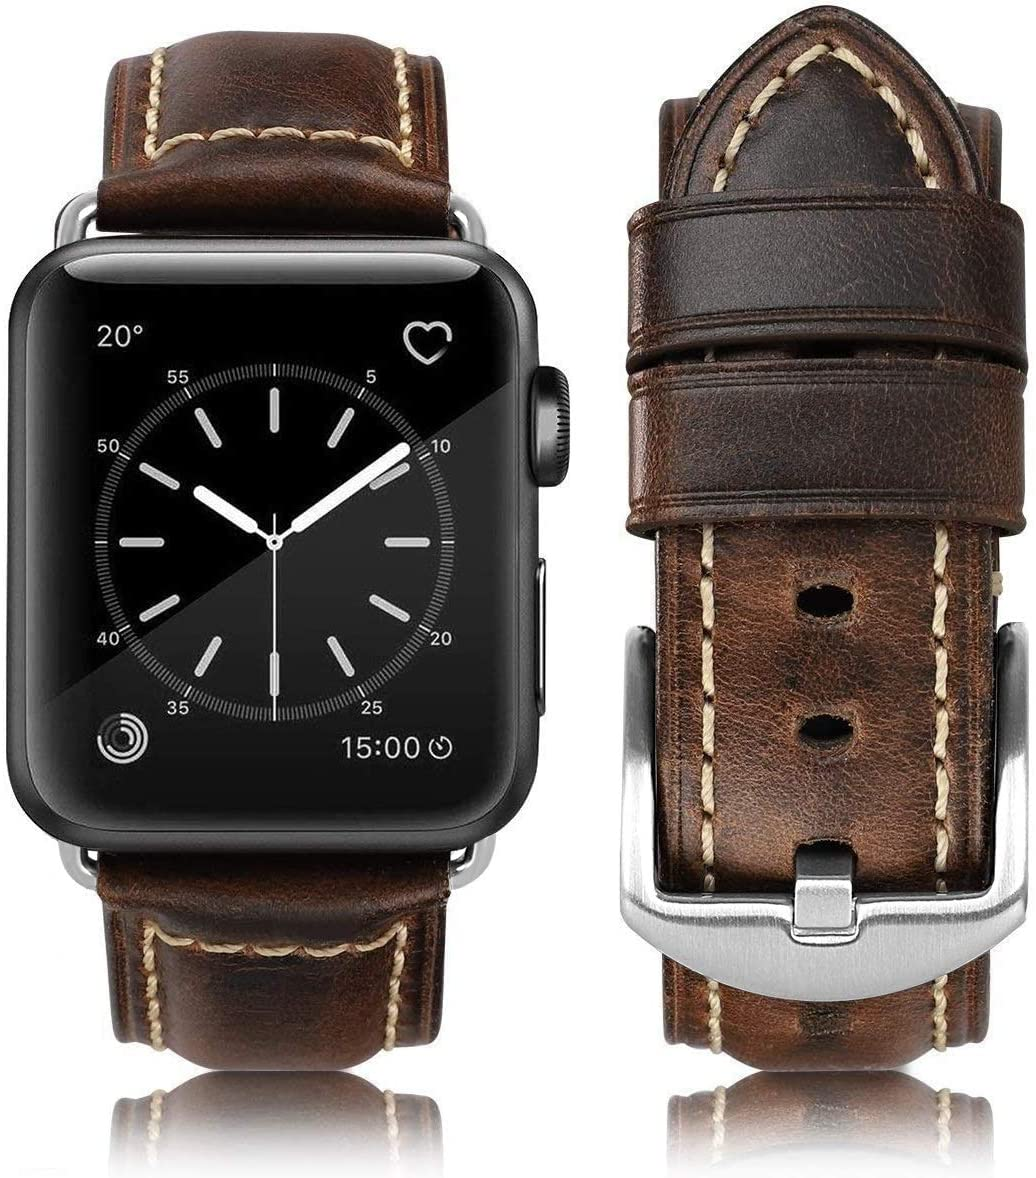 Compatible for apple Watch Band 42mm 44mm, Grain Leather Band Replacement Strap iWatch Series 6/5/4,Series 3,Series 2,Series 1,Sport, Edition.New Retro Leather (Retro Coffee+silver Buckle, 42mm 44mm)